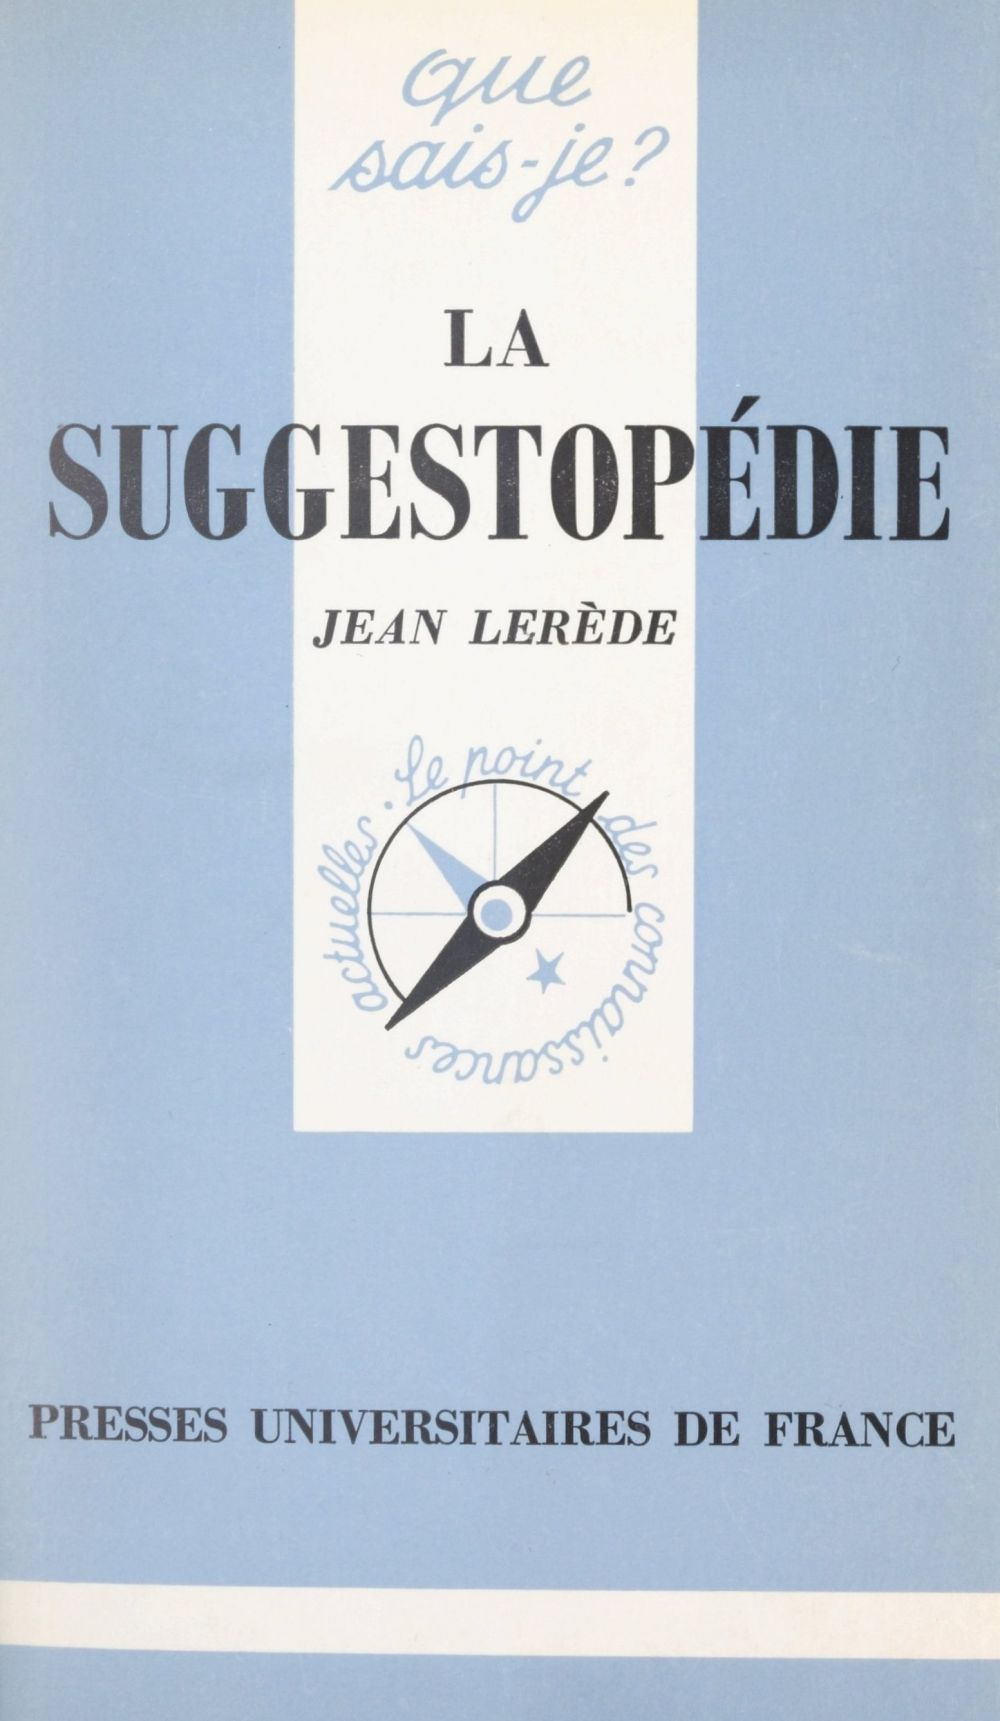 La suggestopédie